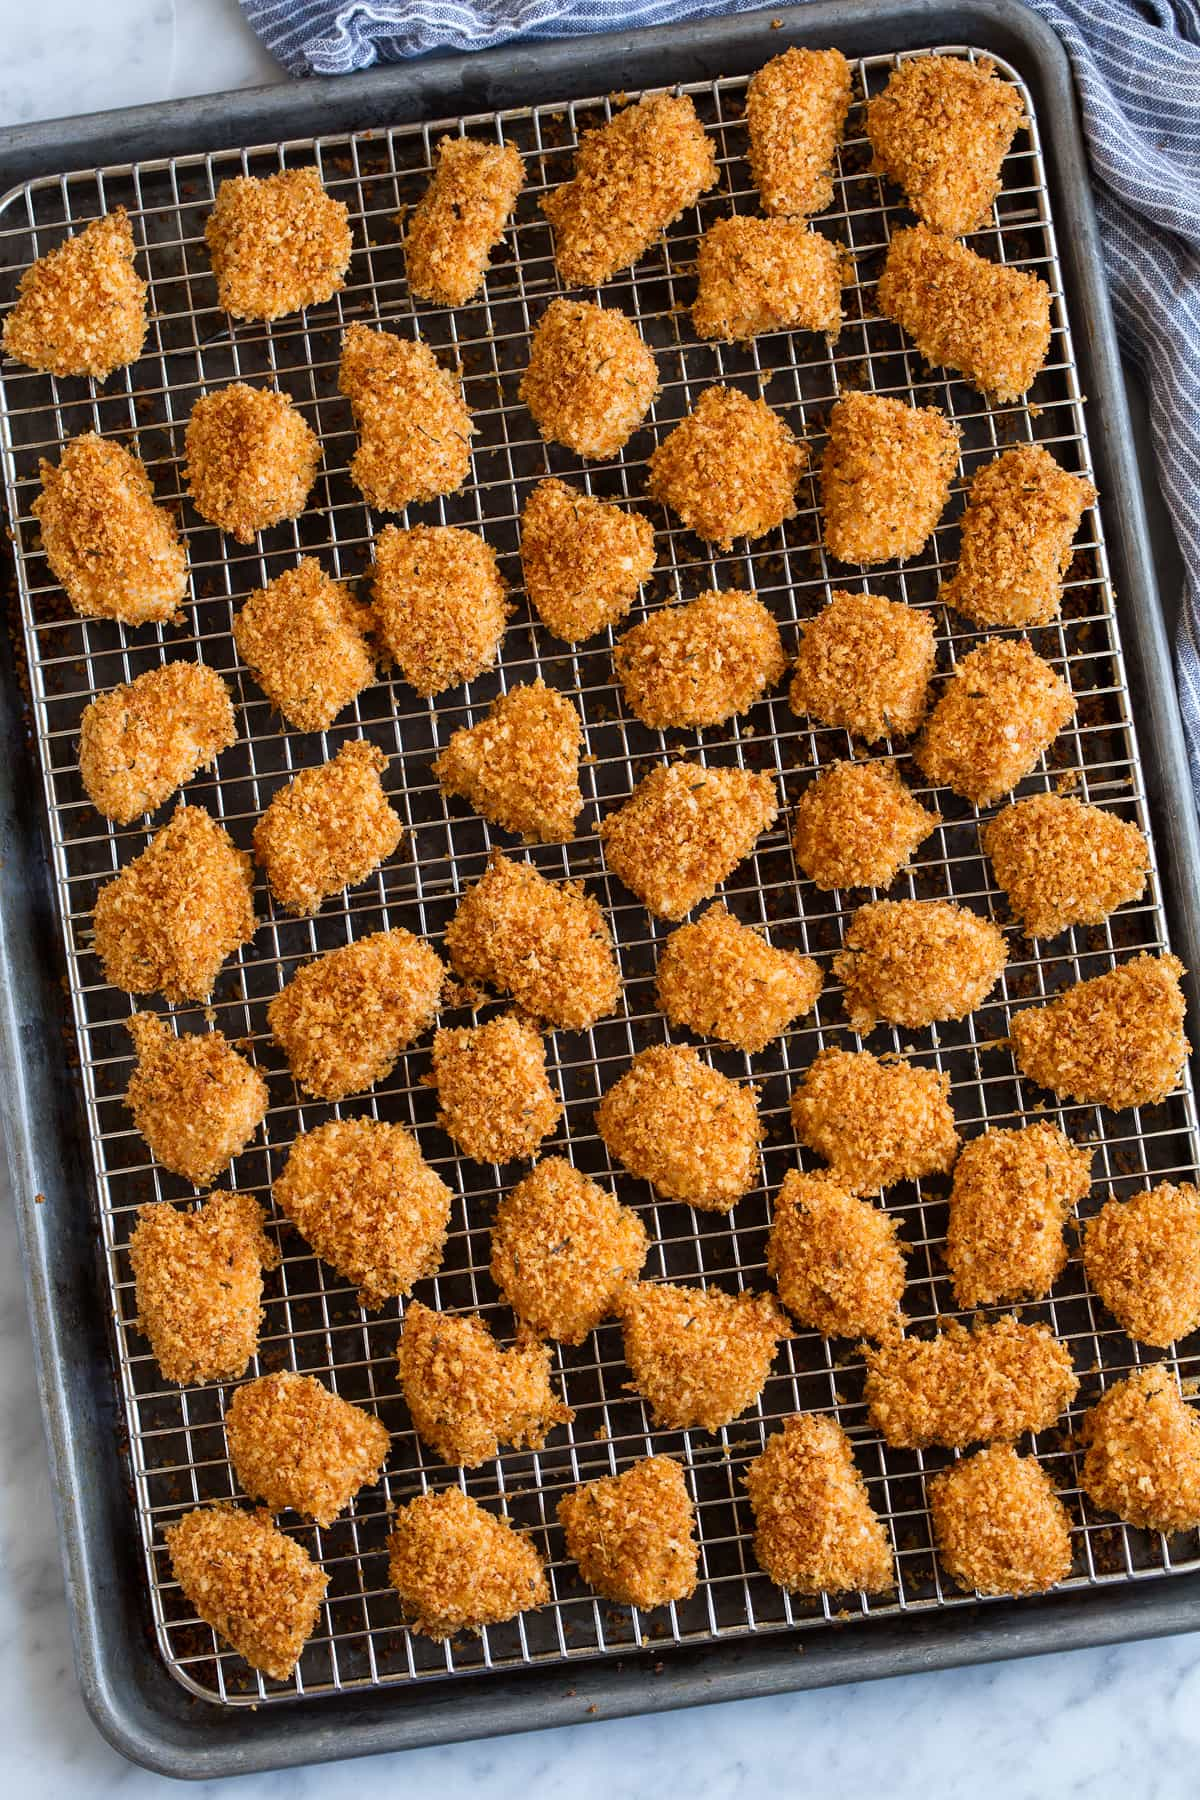 Chicken Nuggets shown on wire rack over baking sheet after baking.